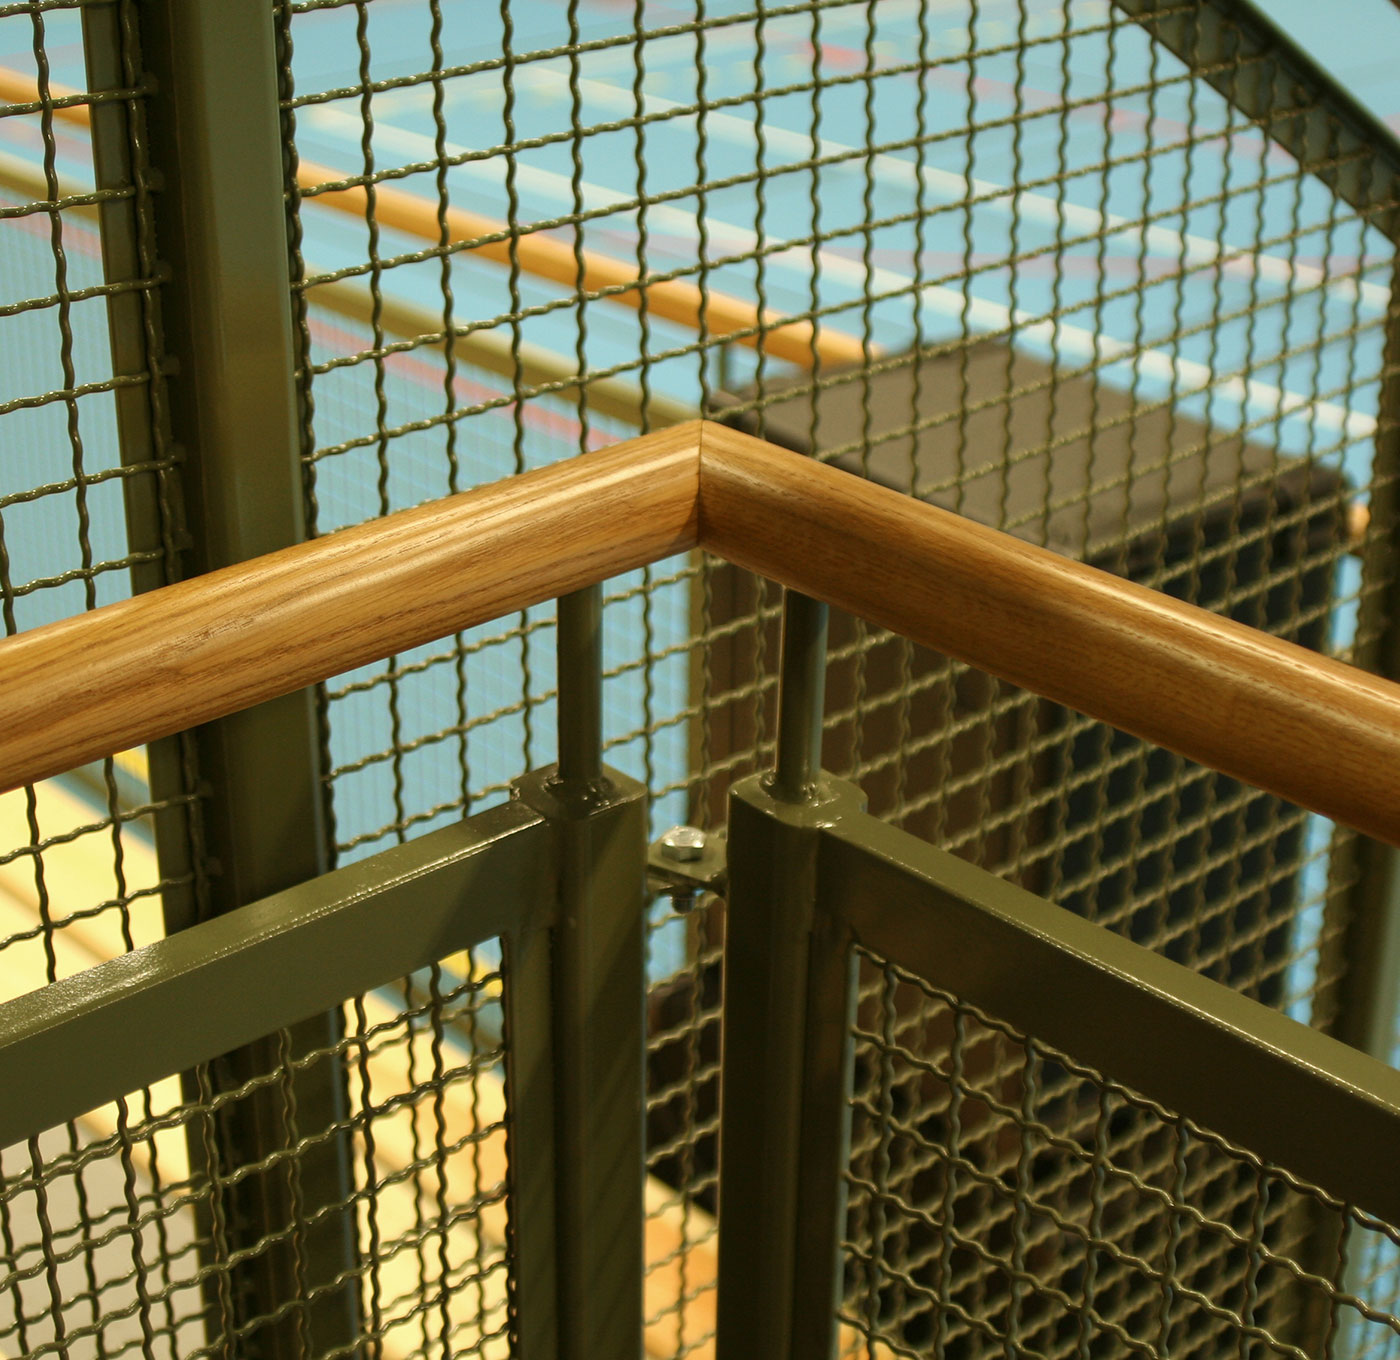 Detail picture with wooden handrail and railing in crenelated mesh